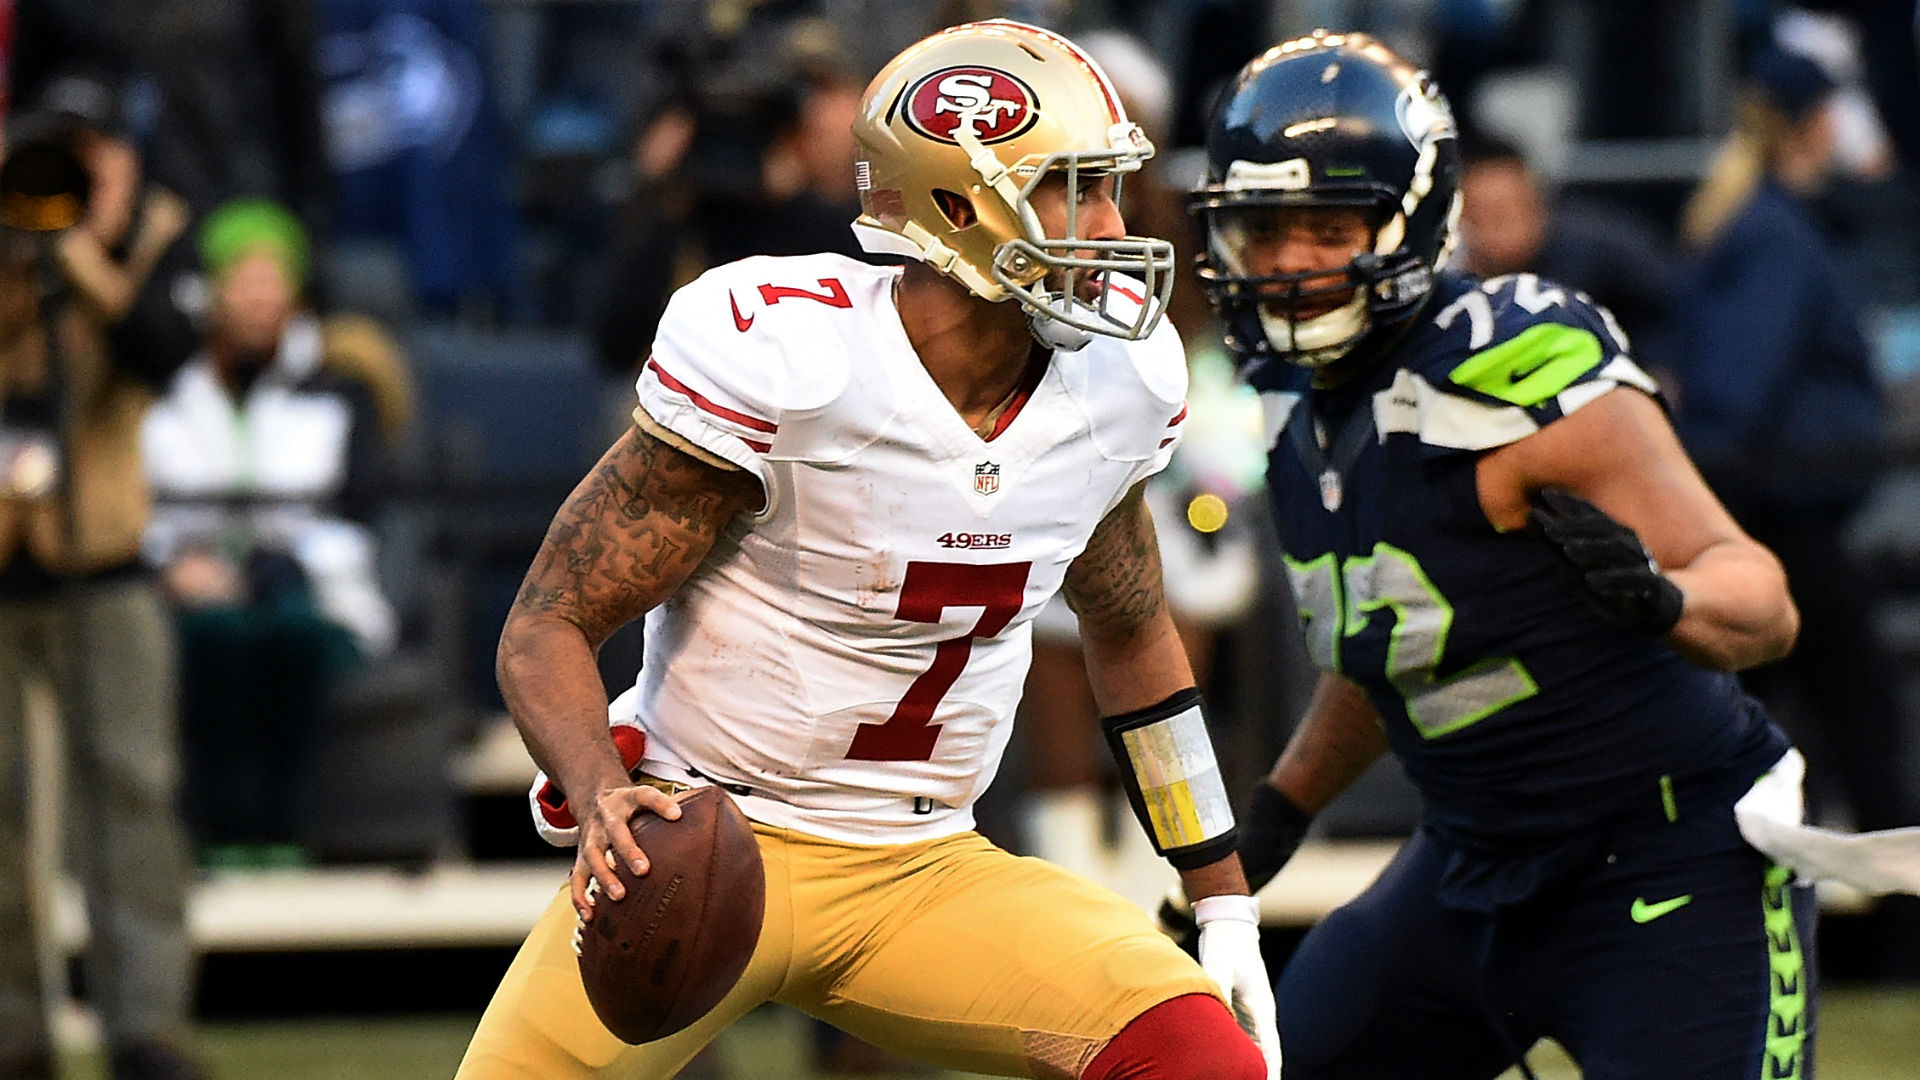 Chargers vs. 49ers props - Picking on struggling quarterbacks